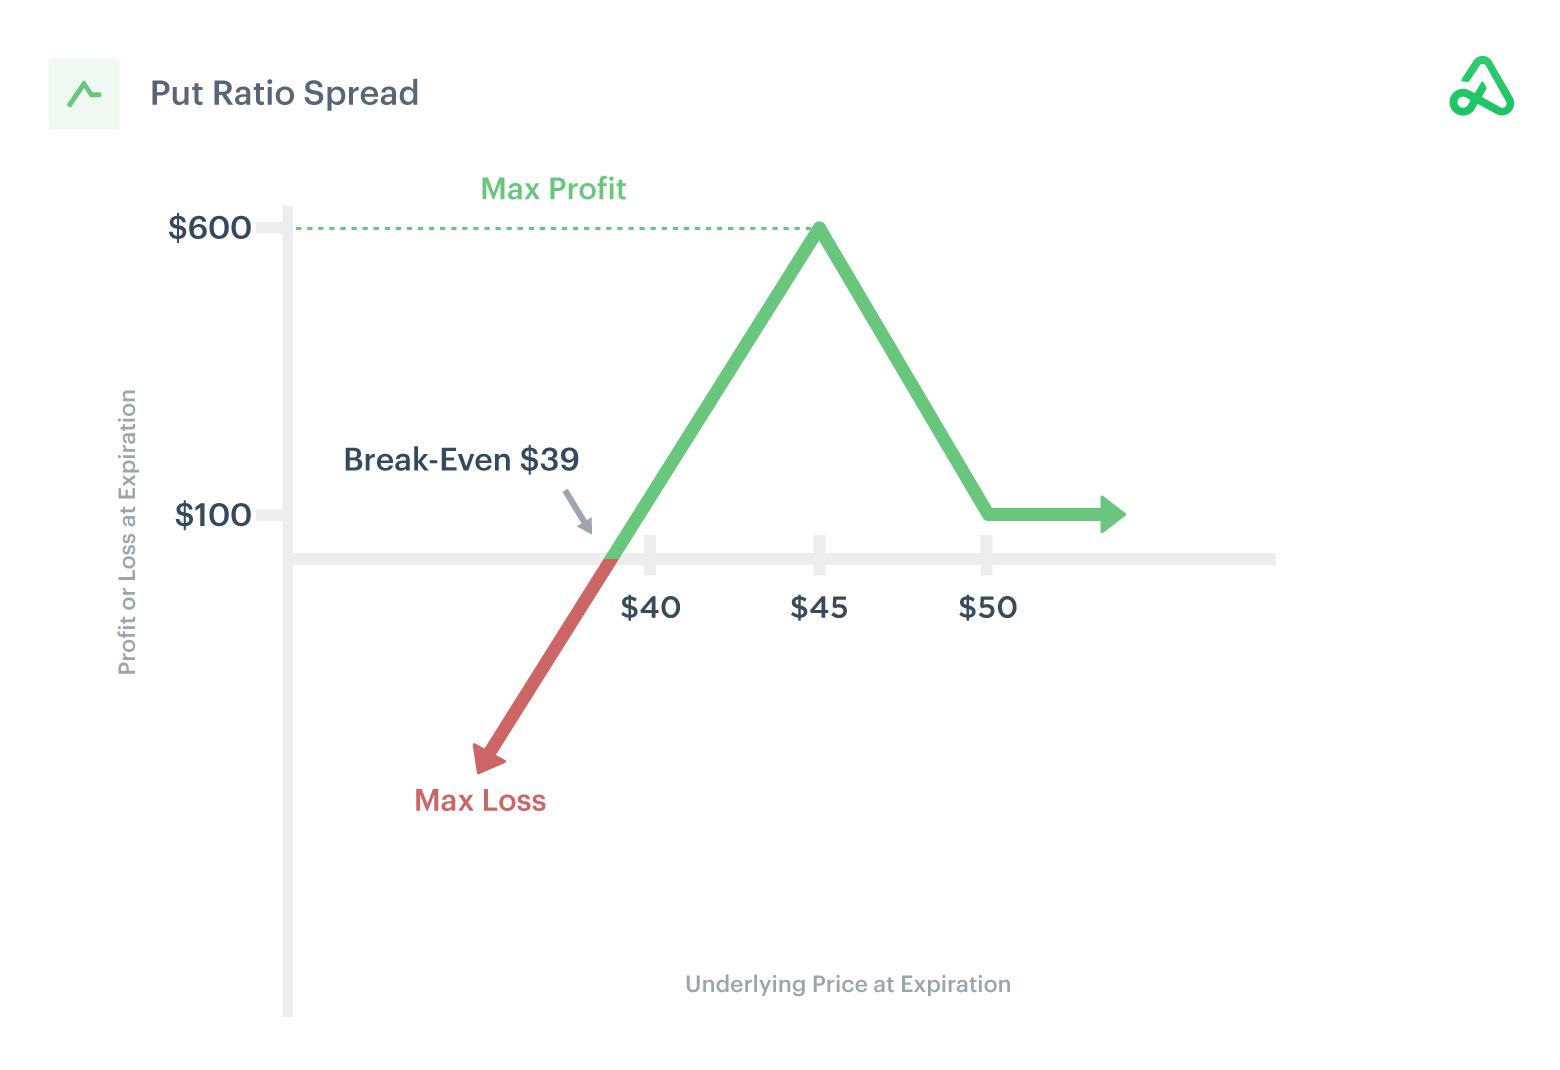 Image of put ratio spread payoff diagram showing max profit, max loss, and break-even points